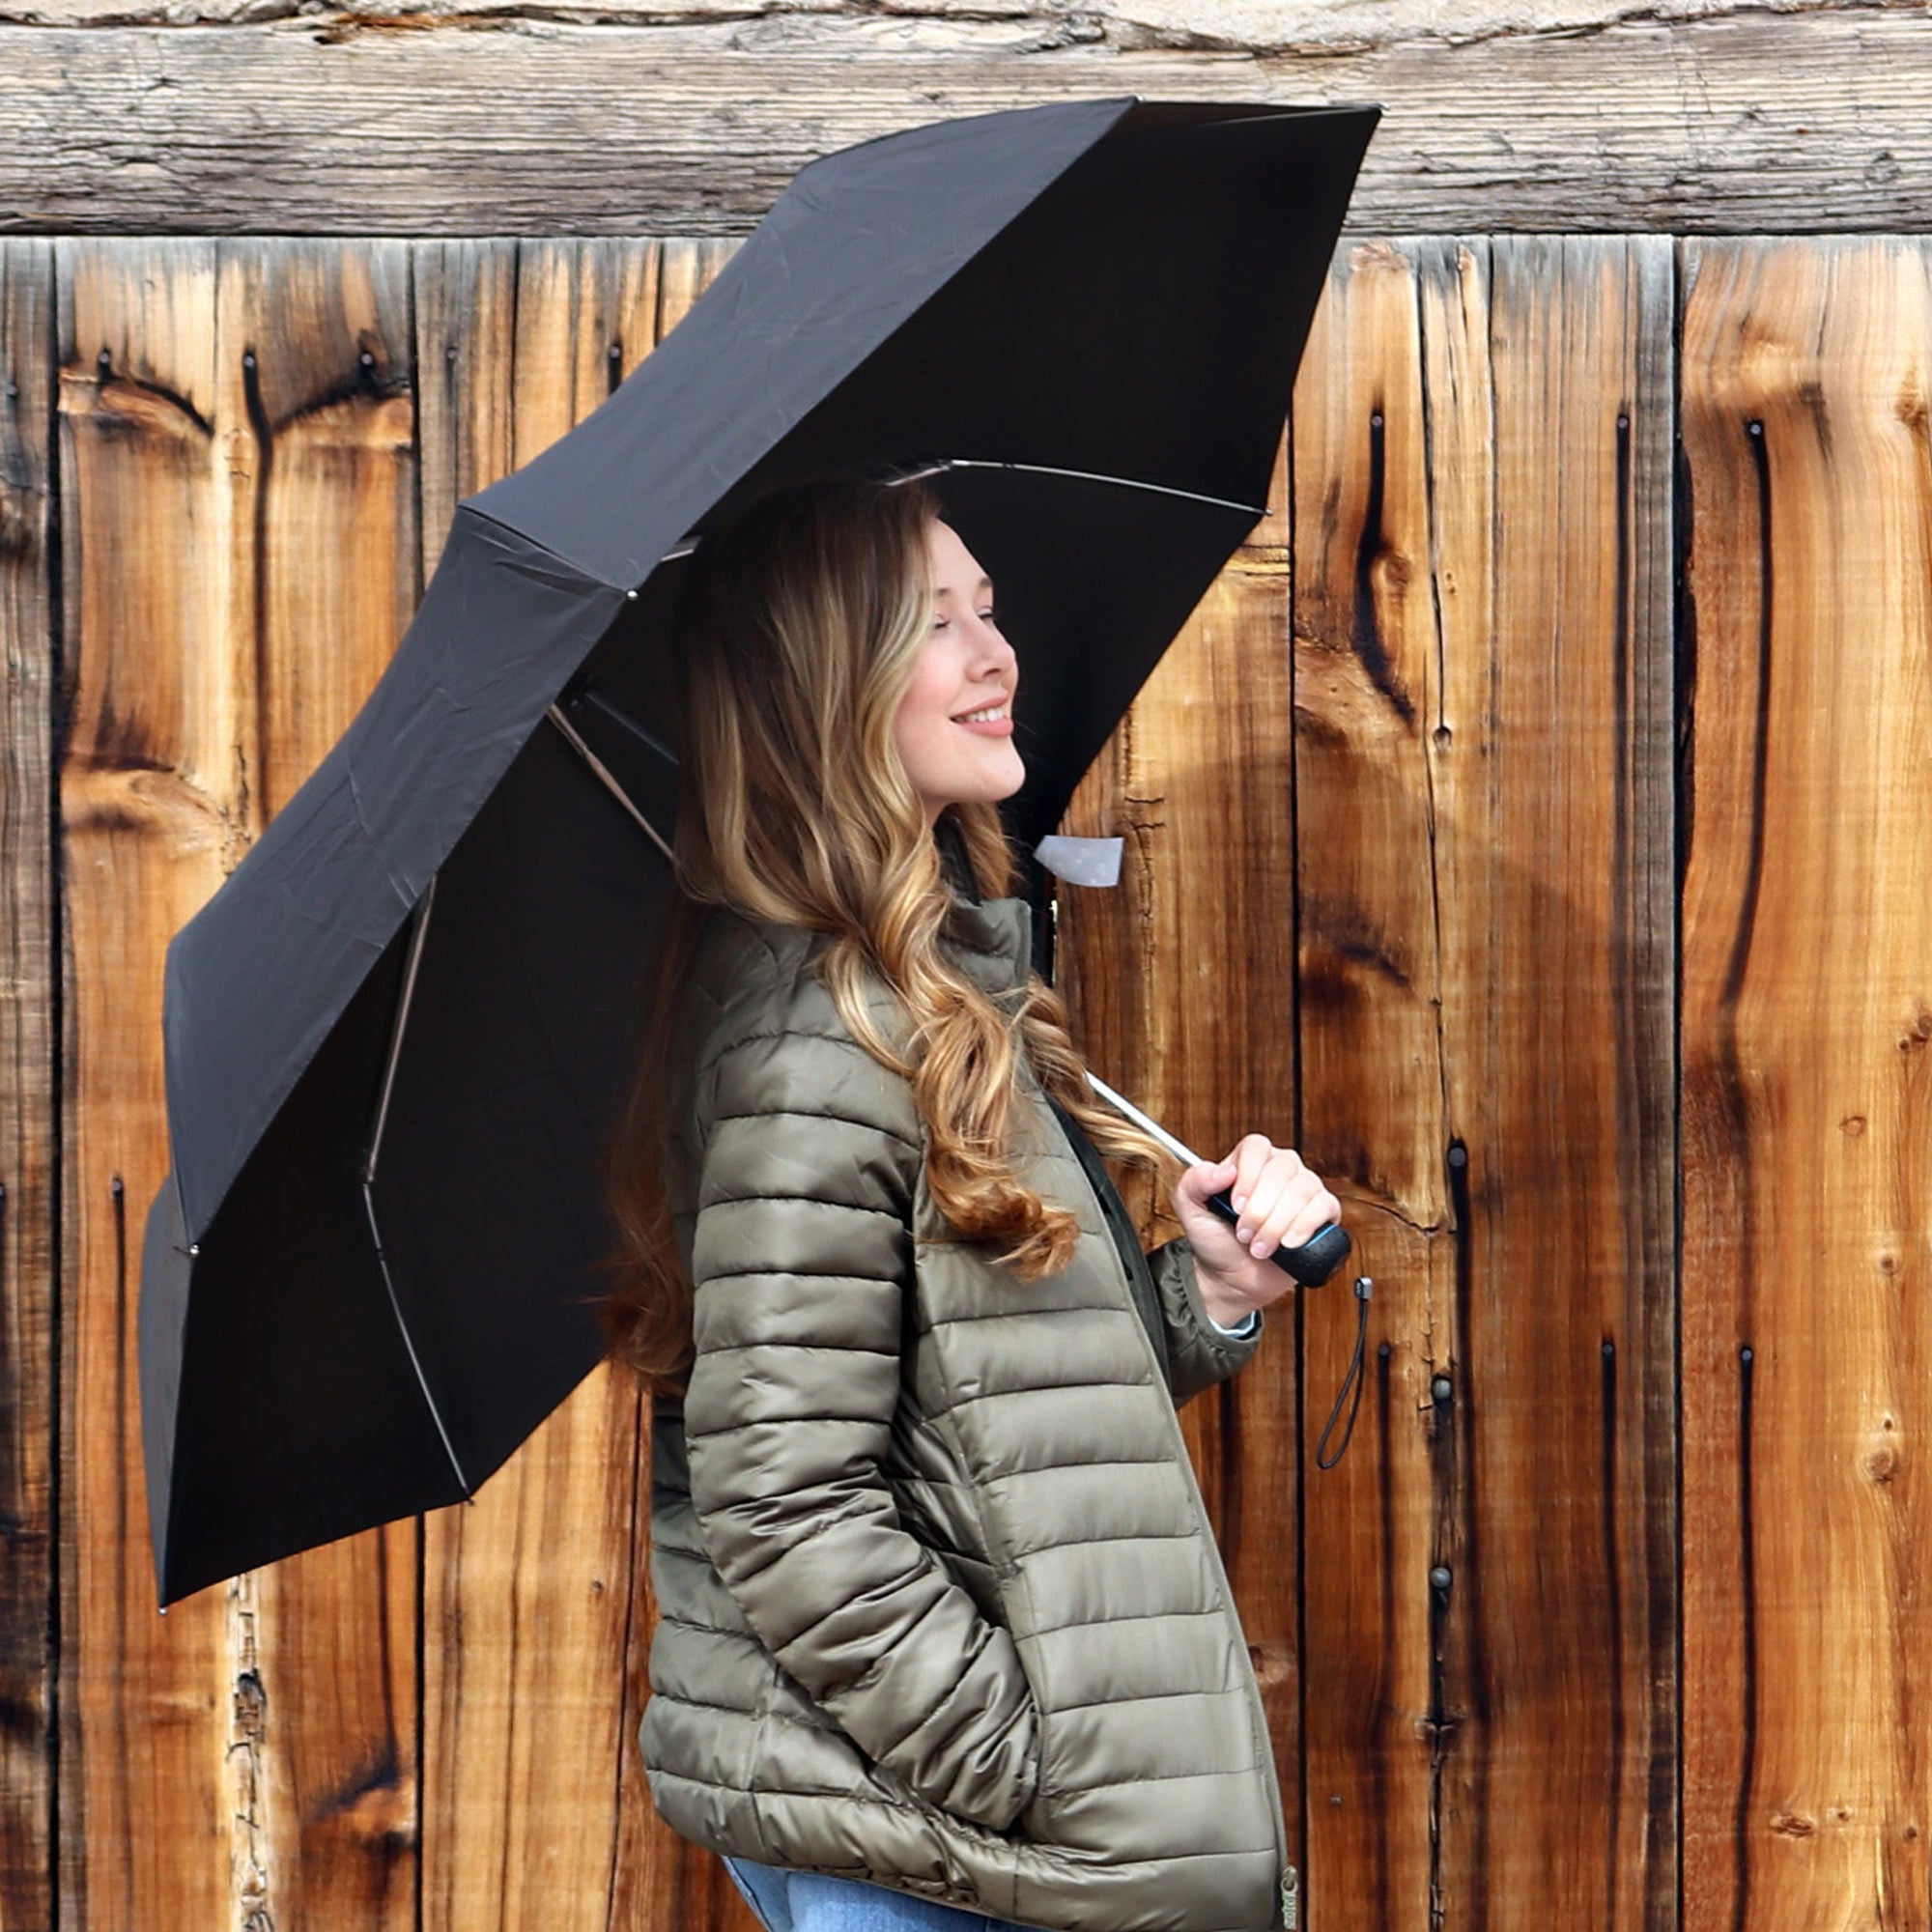 Female model holding a titan umbrella over her head and smiling against a wood fence background